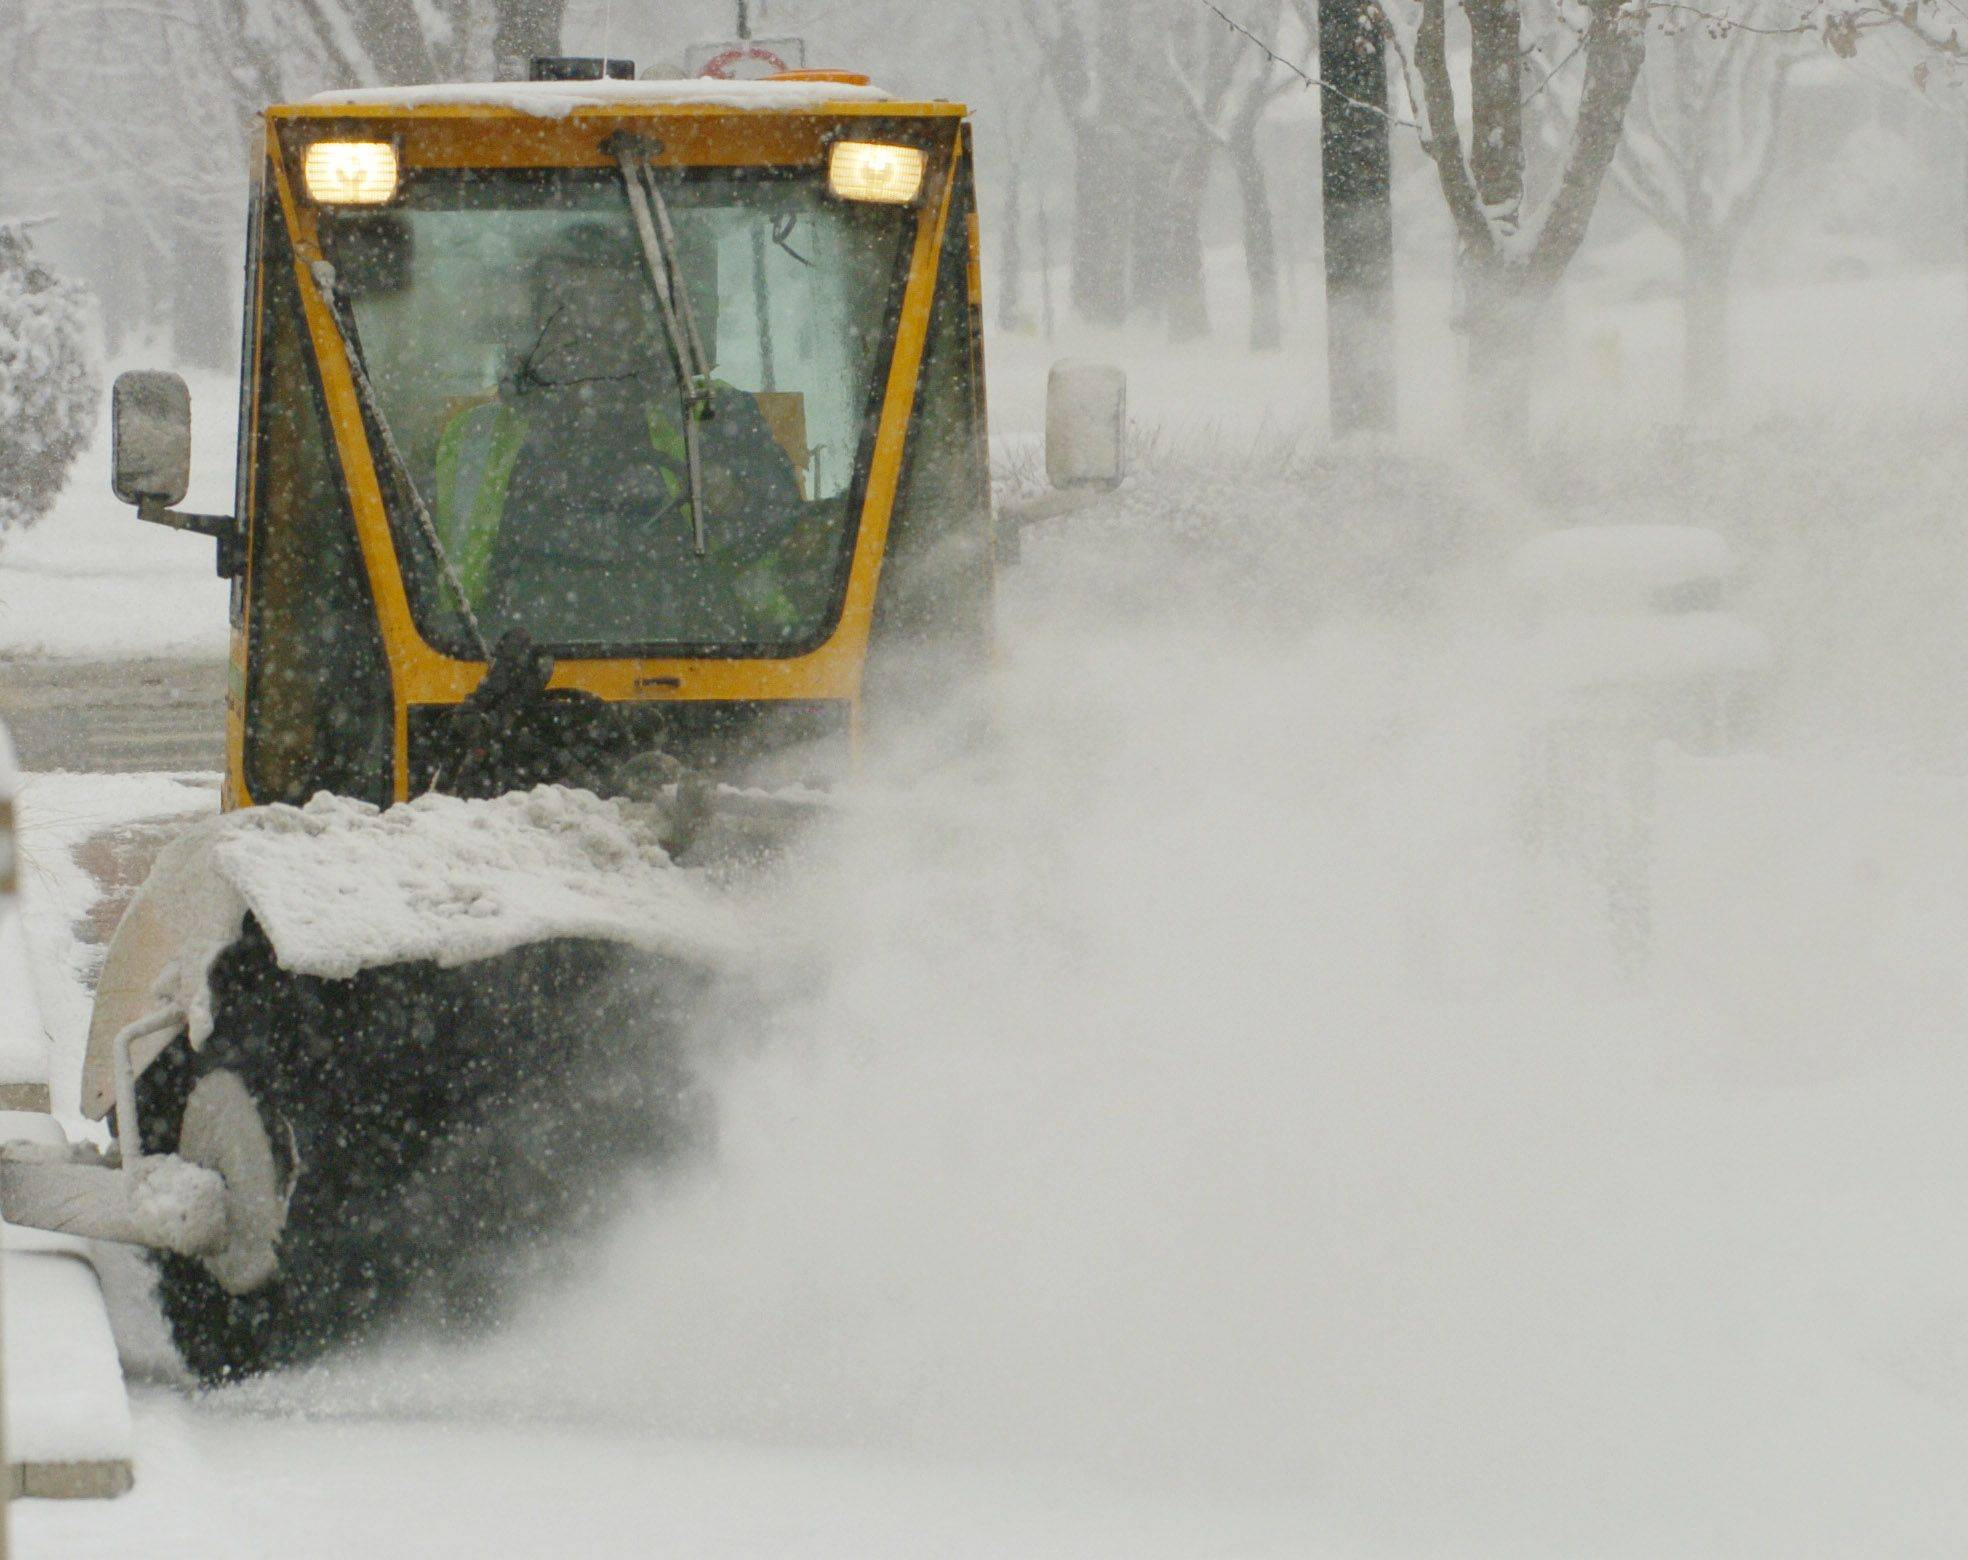 A public works crew clears the sidewalk in front of the Mount Prospect Public Library Saturday morning.